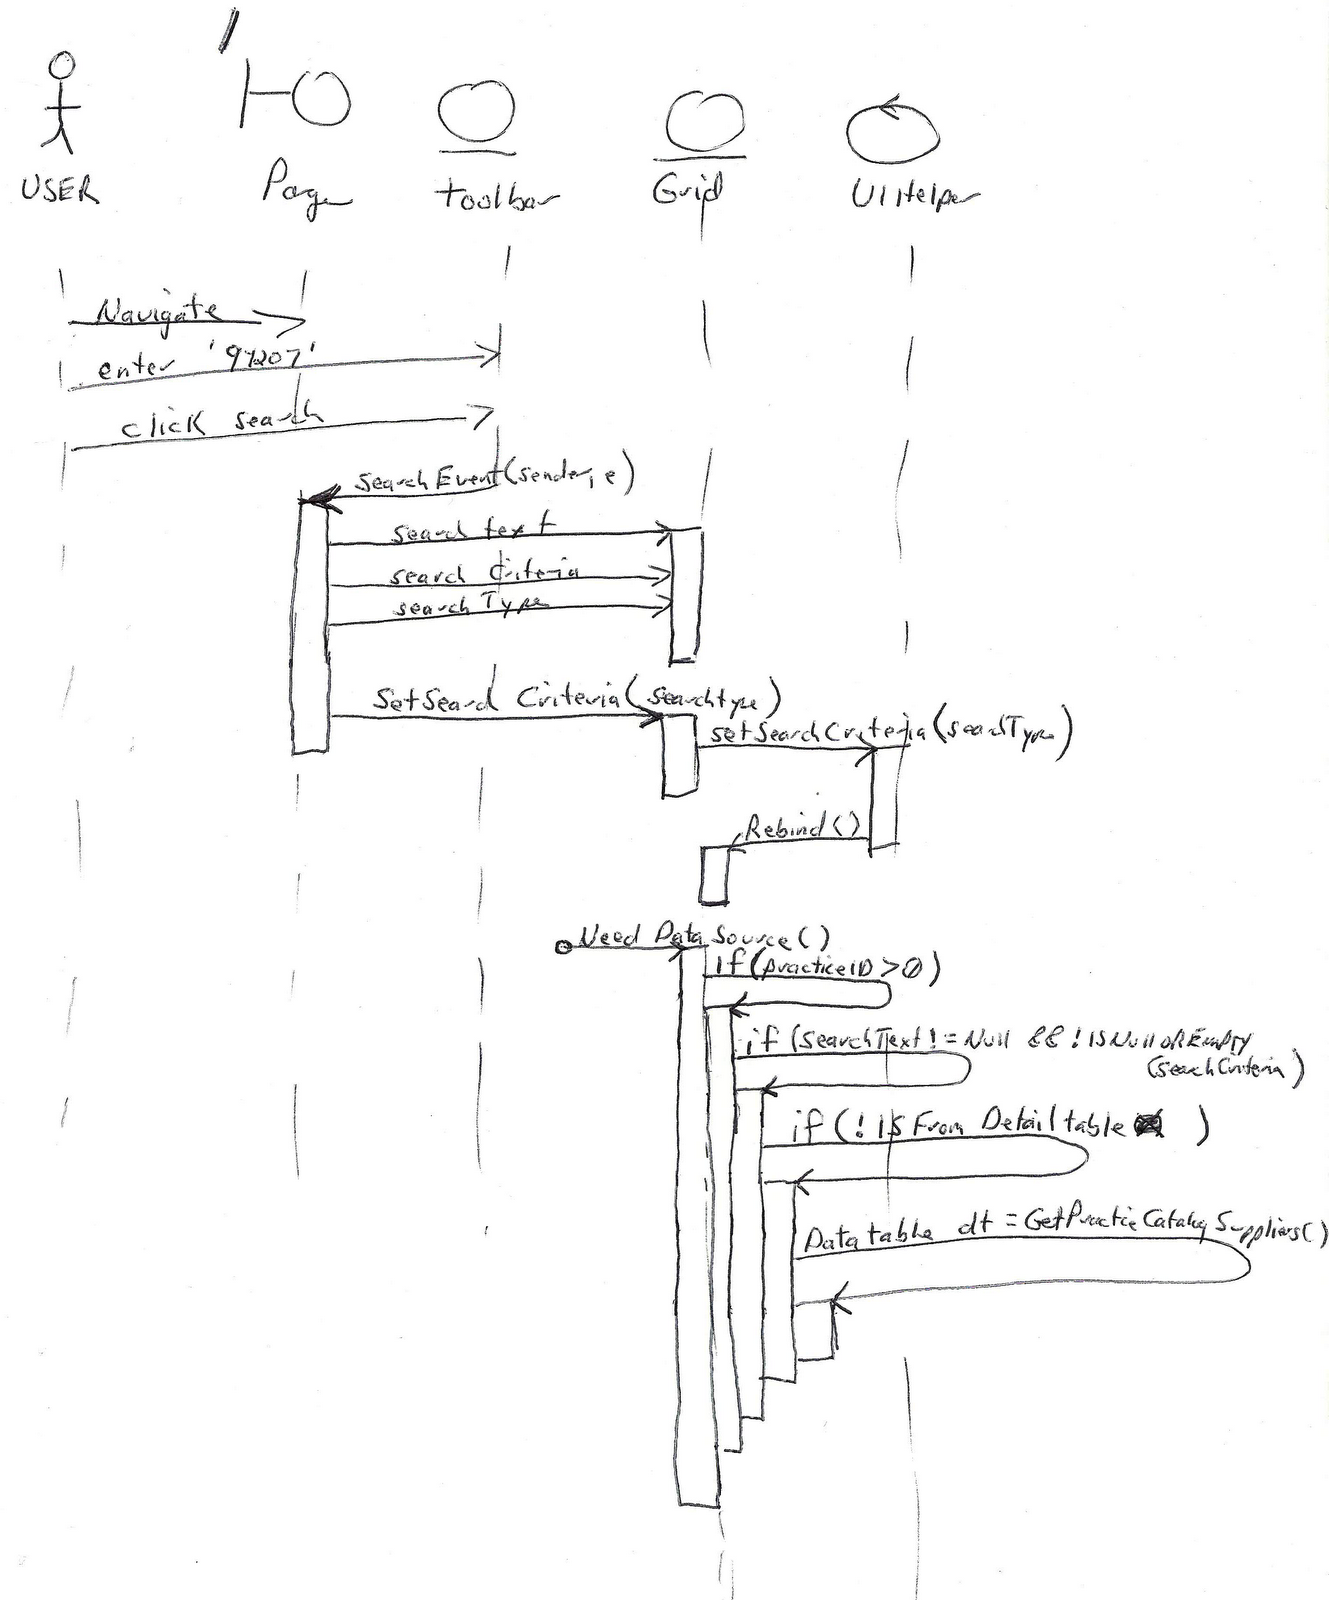 visual studio generate sequence diagram 1986 toyota pickup wiring mike sneen 39s net blog if statement